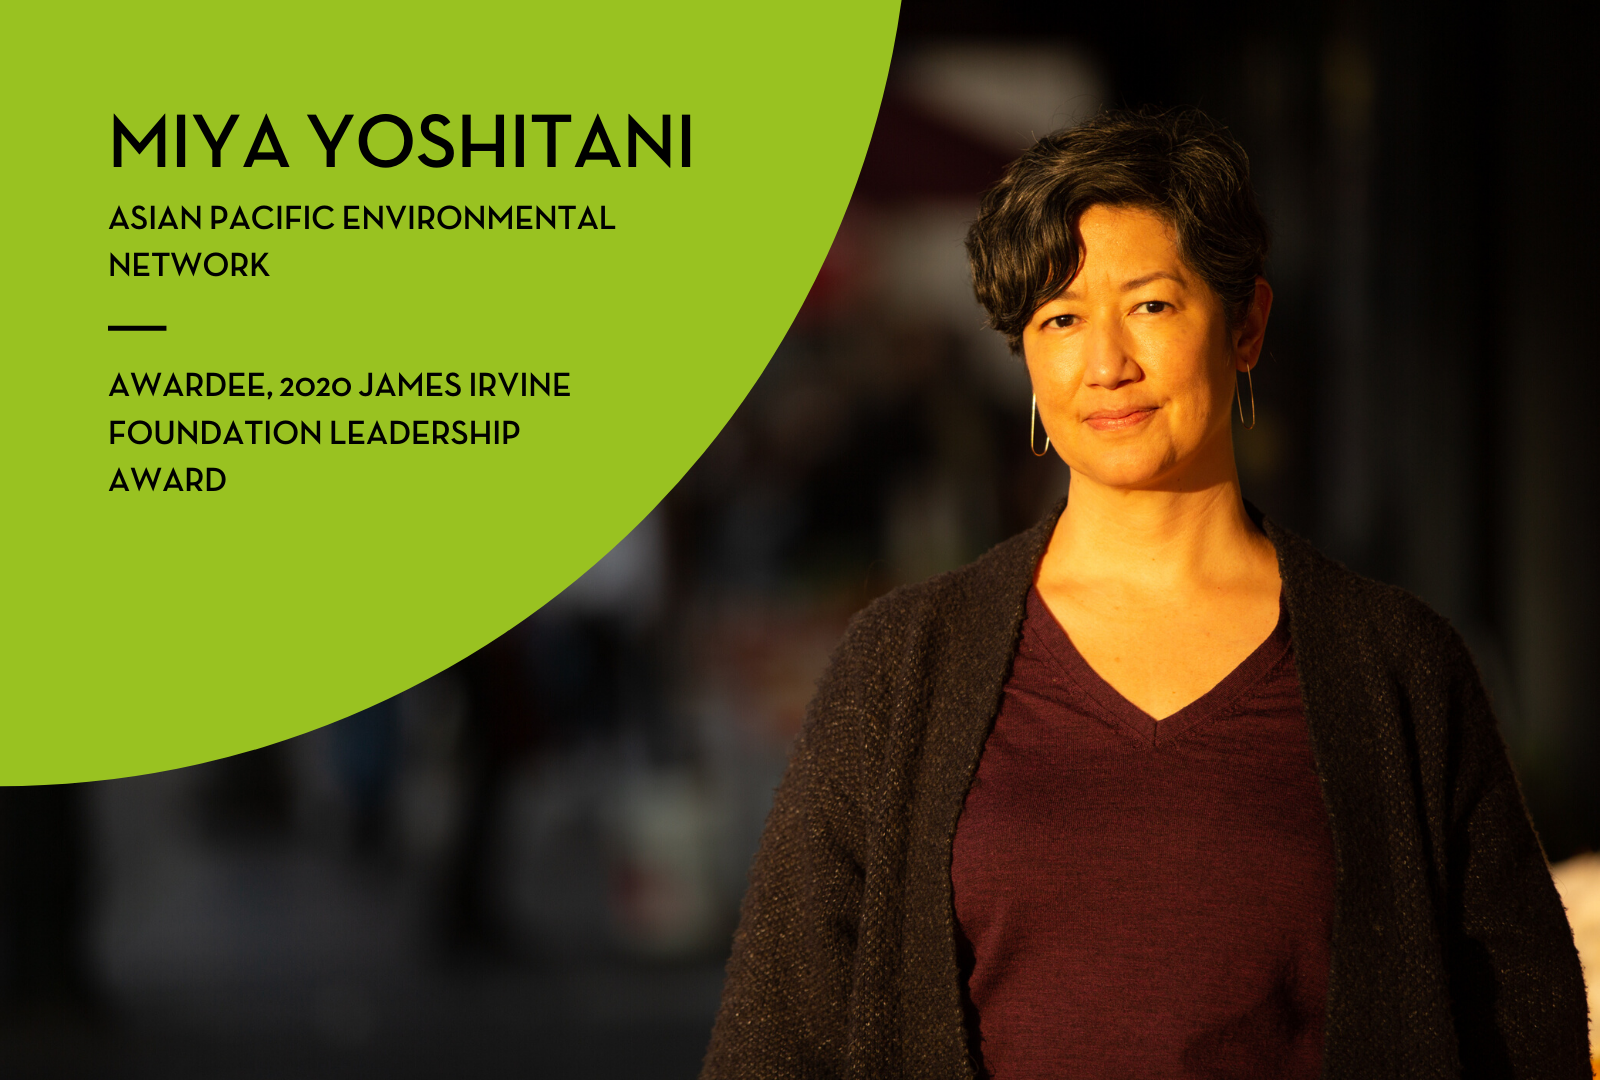 Miya Yoshitani receives the 2020 James Irvine Foundation Leadership Award